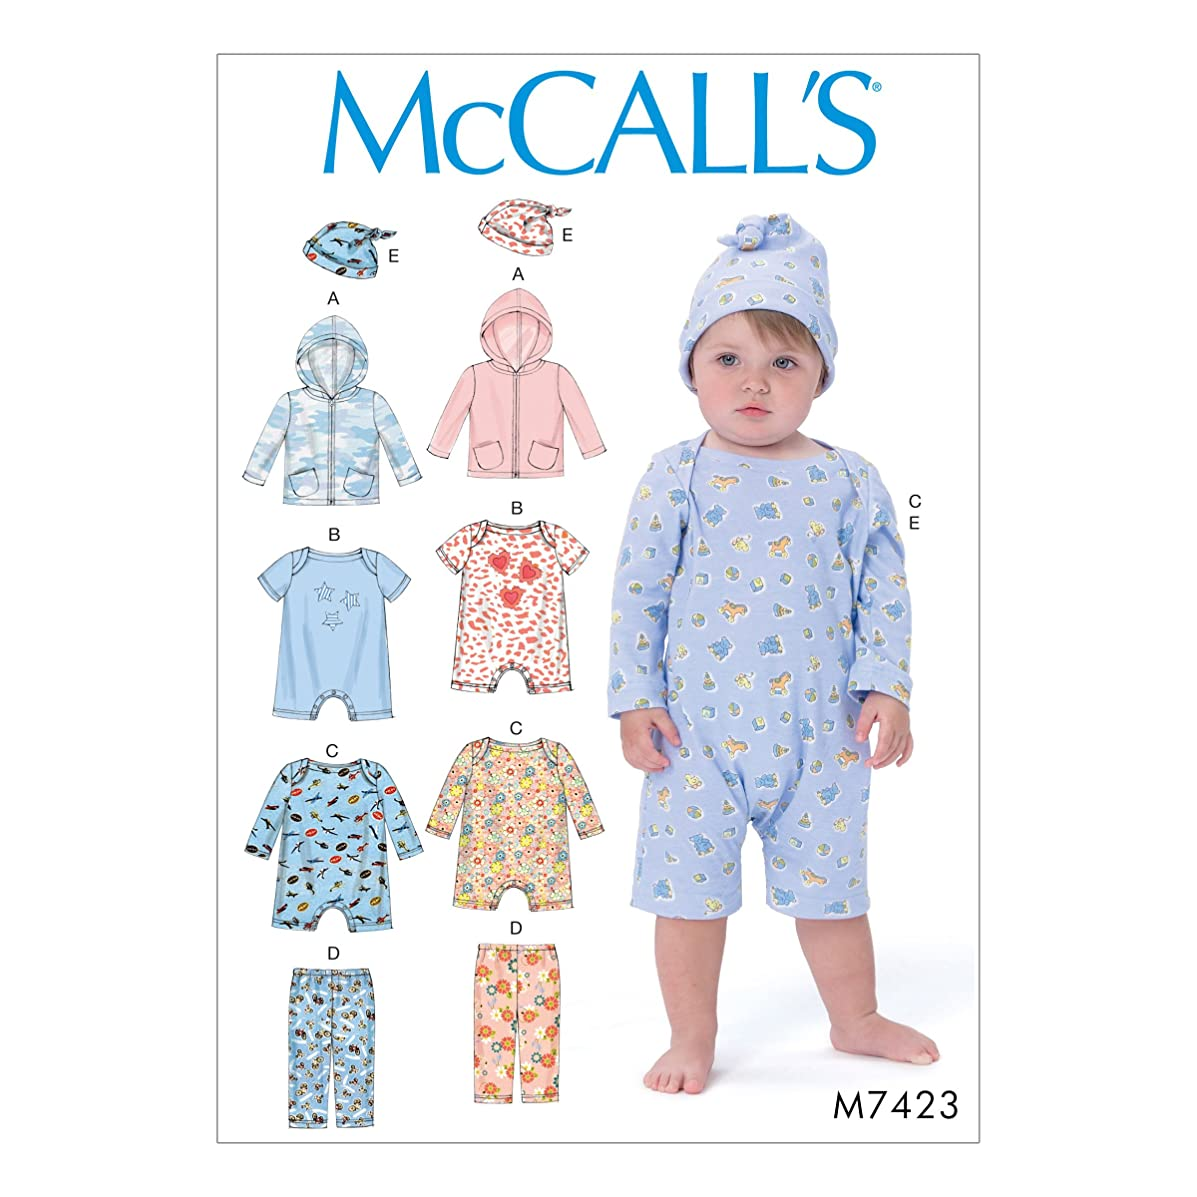 McCall's Patterns M7423YA5 Infants' Hoodie, Bodysuits, Pants and Beanie